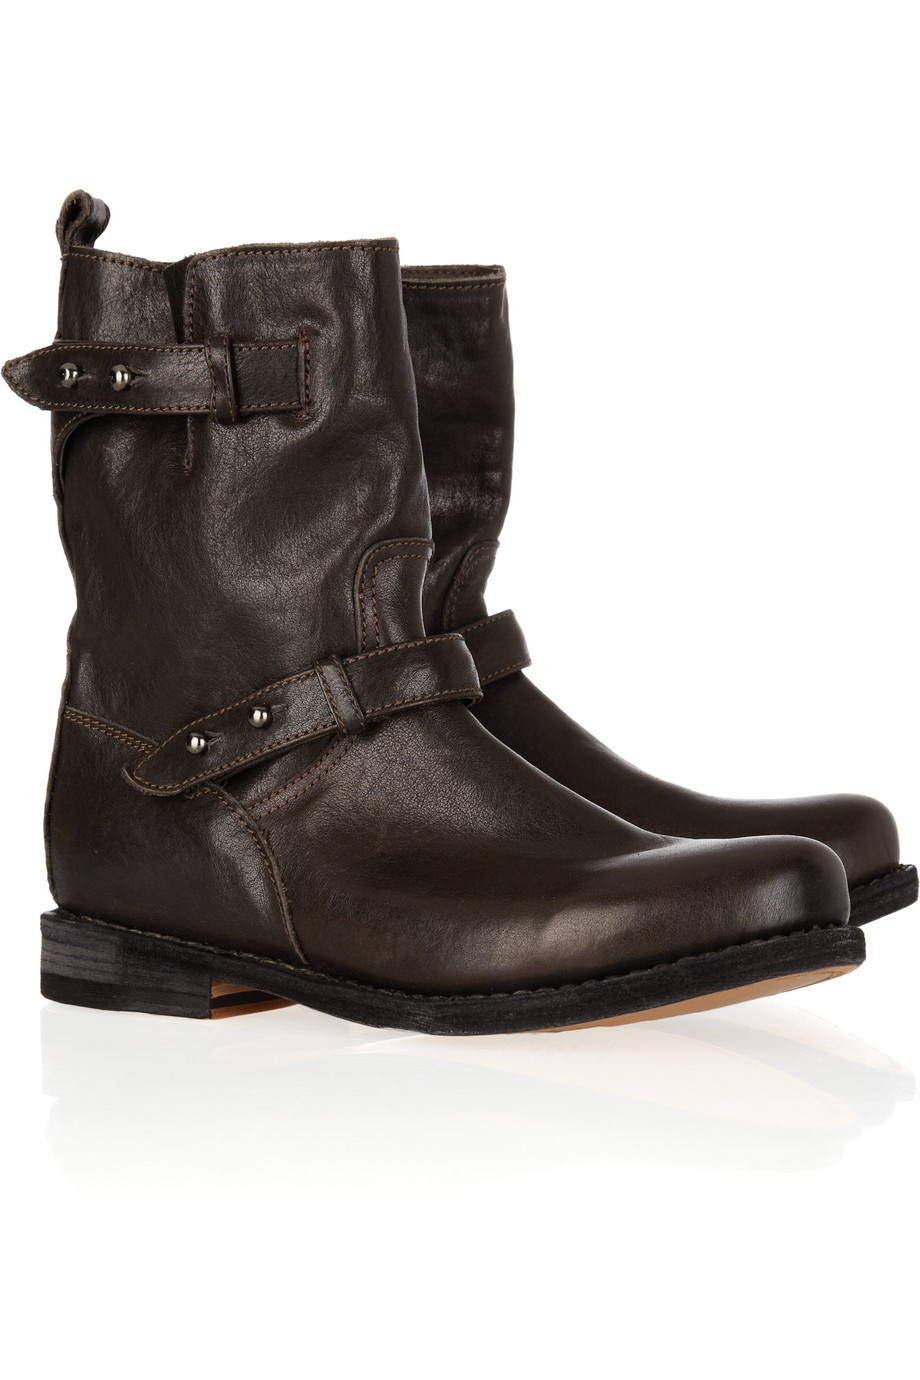 Rag Amp Bone Moto Leather Biker Boots In Brown Lyst